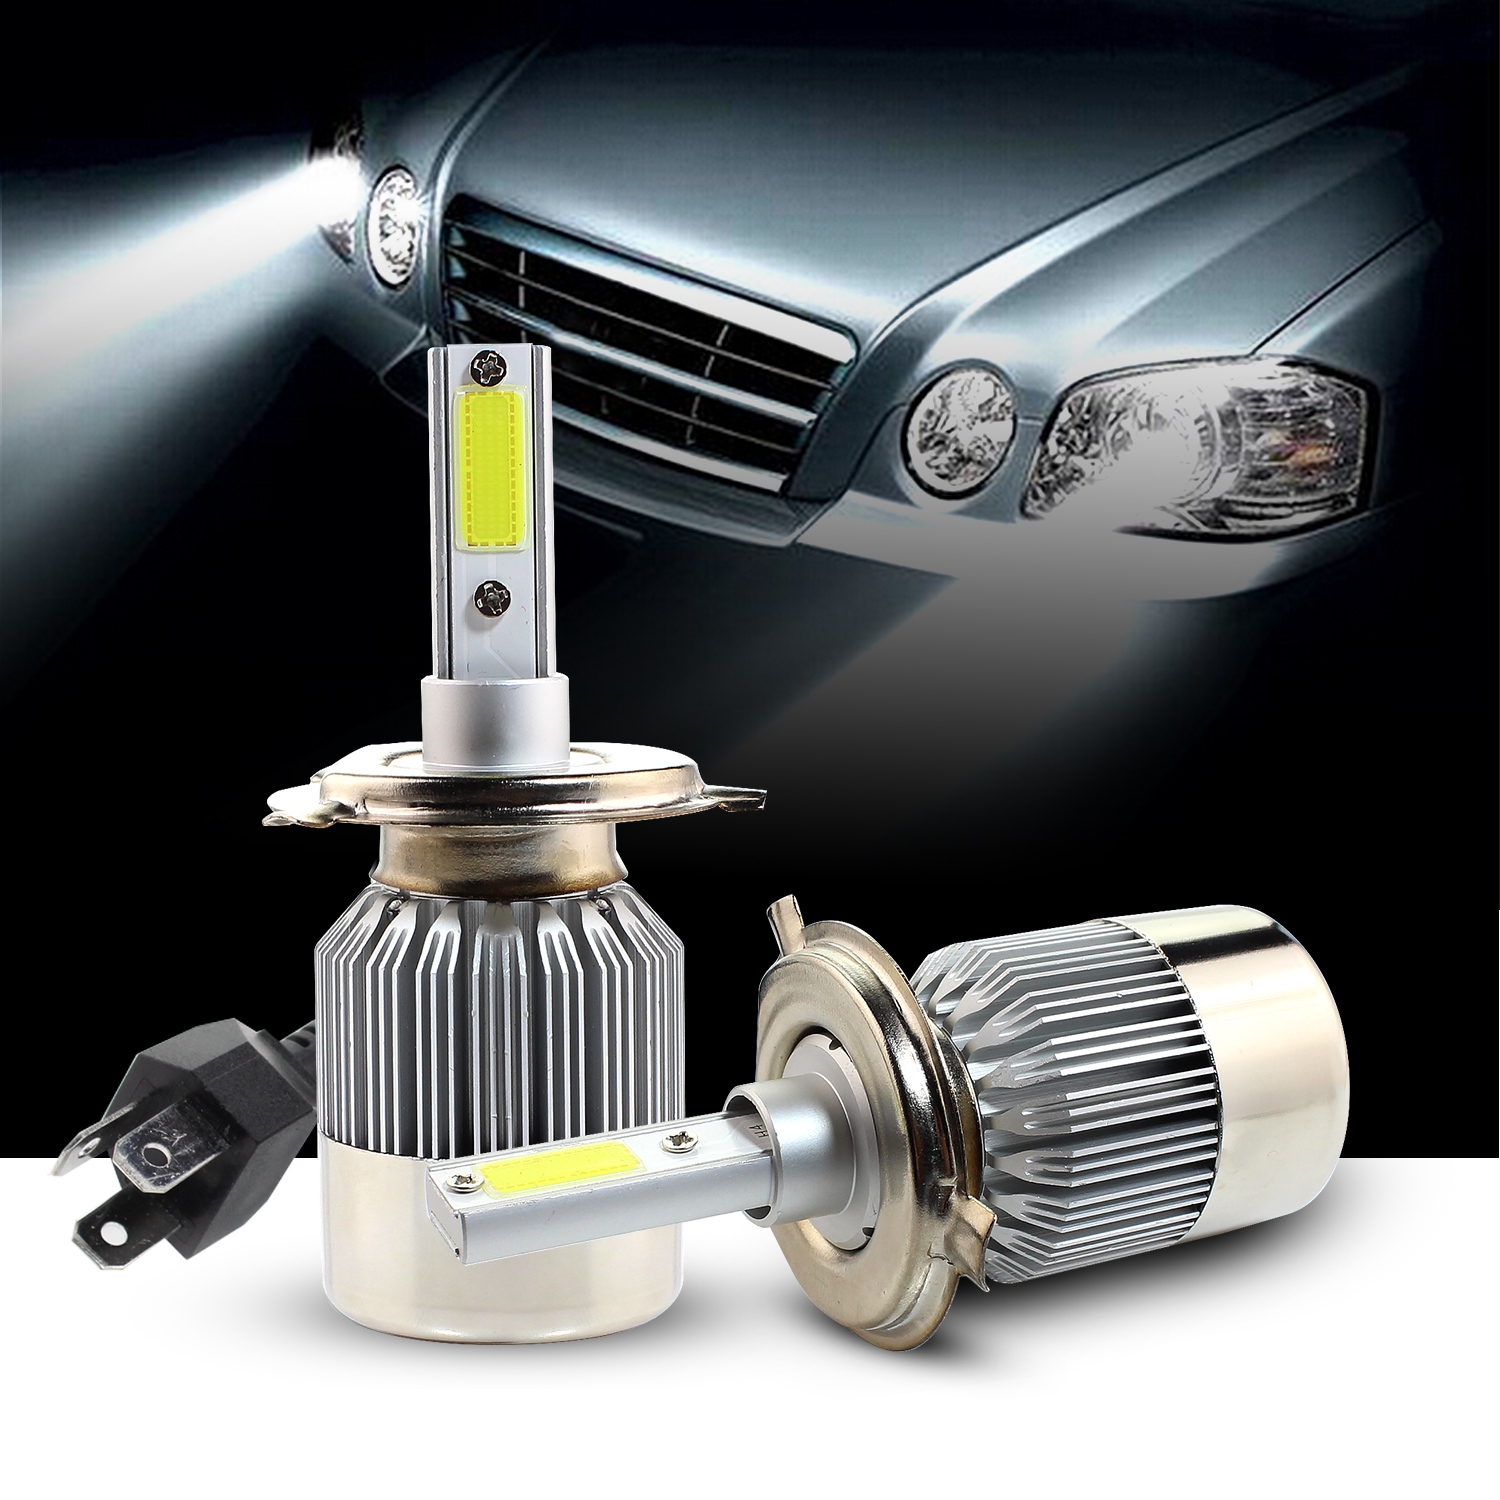 H4 Led Autolamp 2x H1 H4 H7 Headlight Led Car Bulb Autolamp Conversion Kit